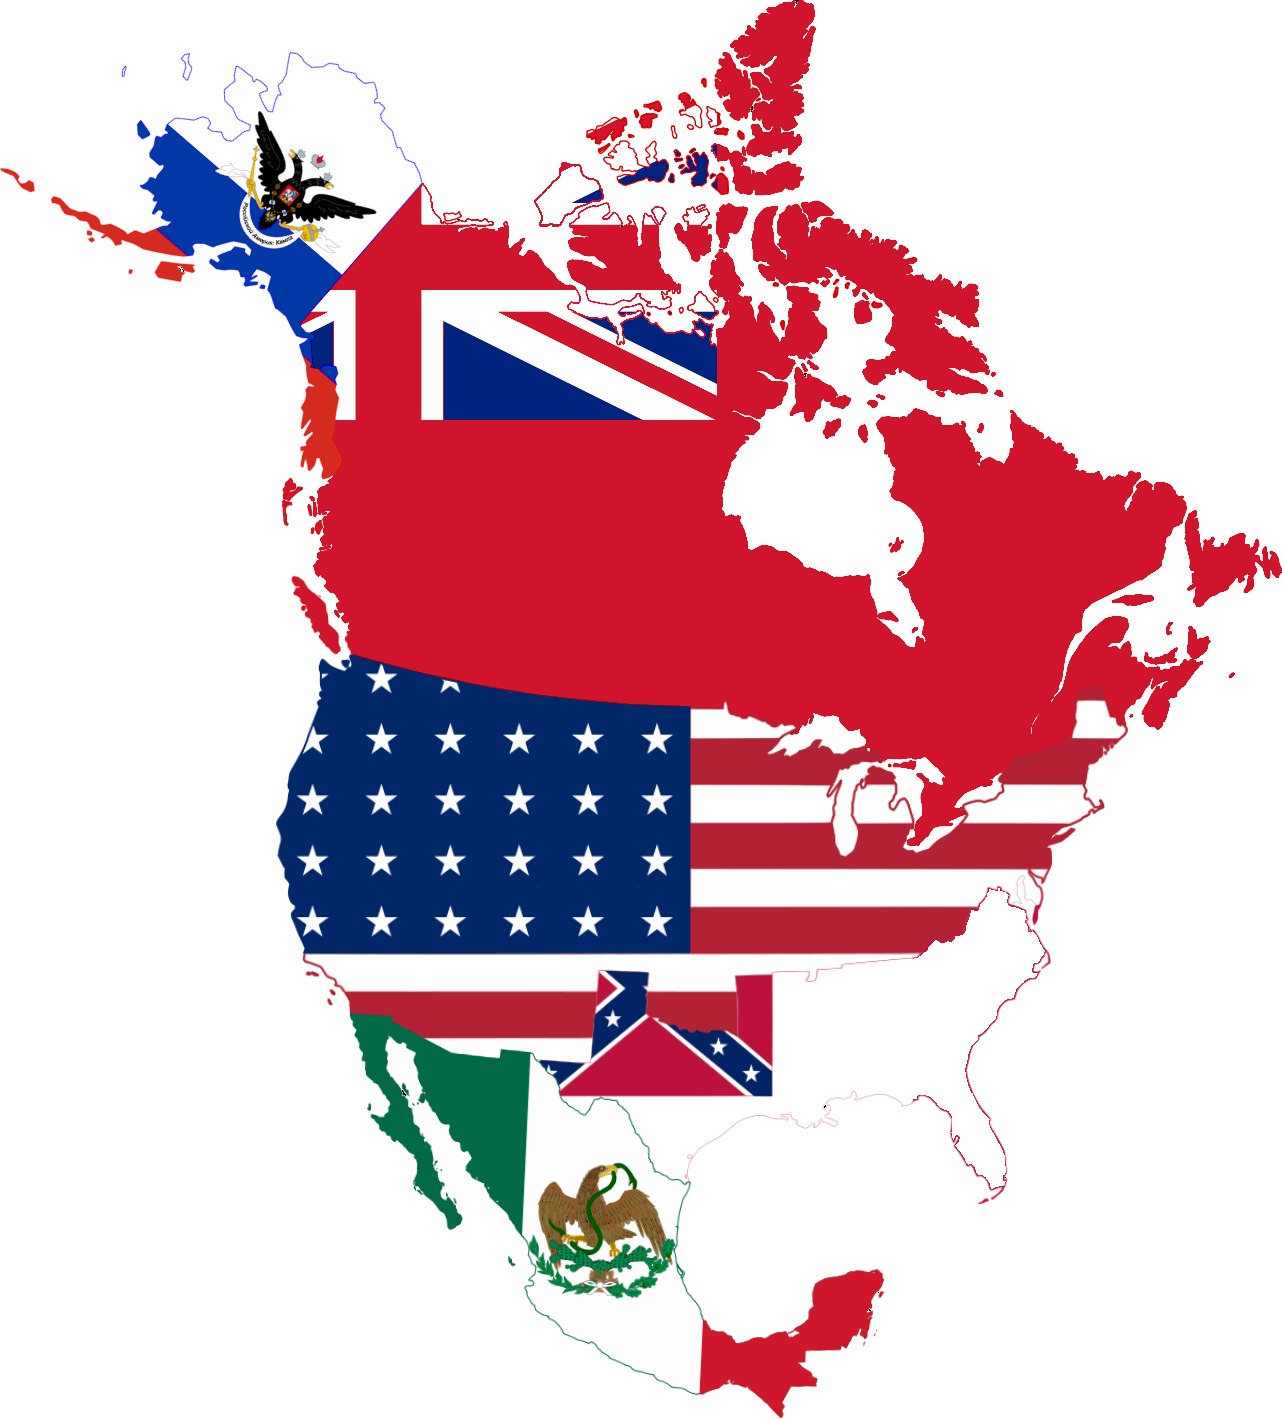 FileFlag Map North America Png Wikimedia Commons - Us flag map